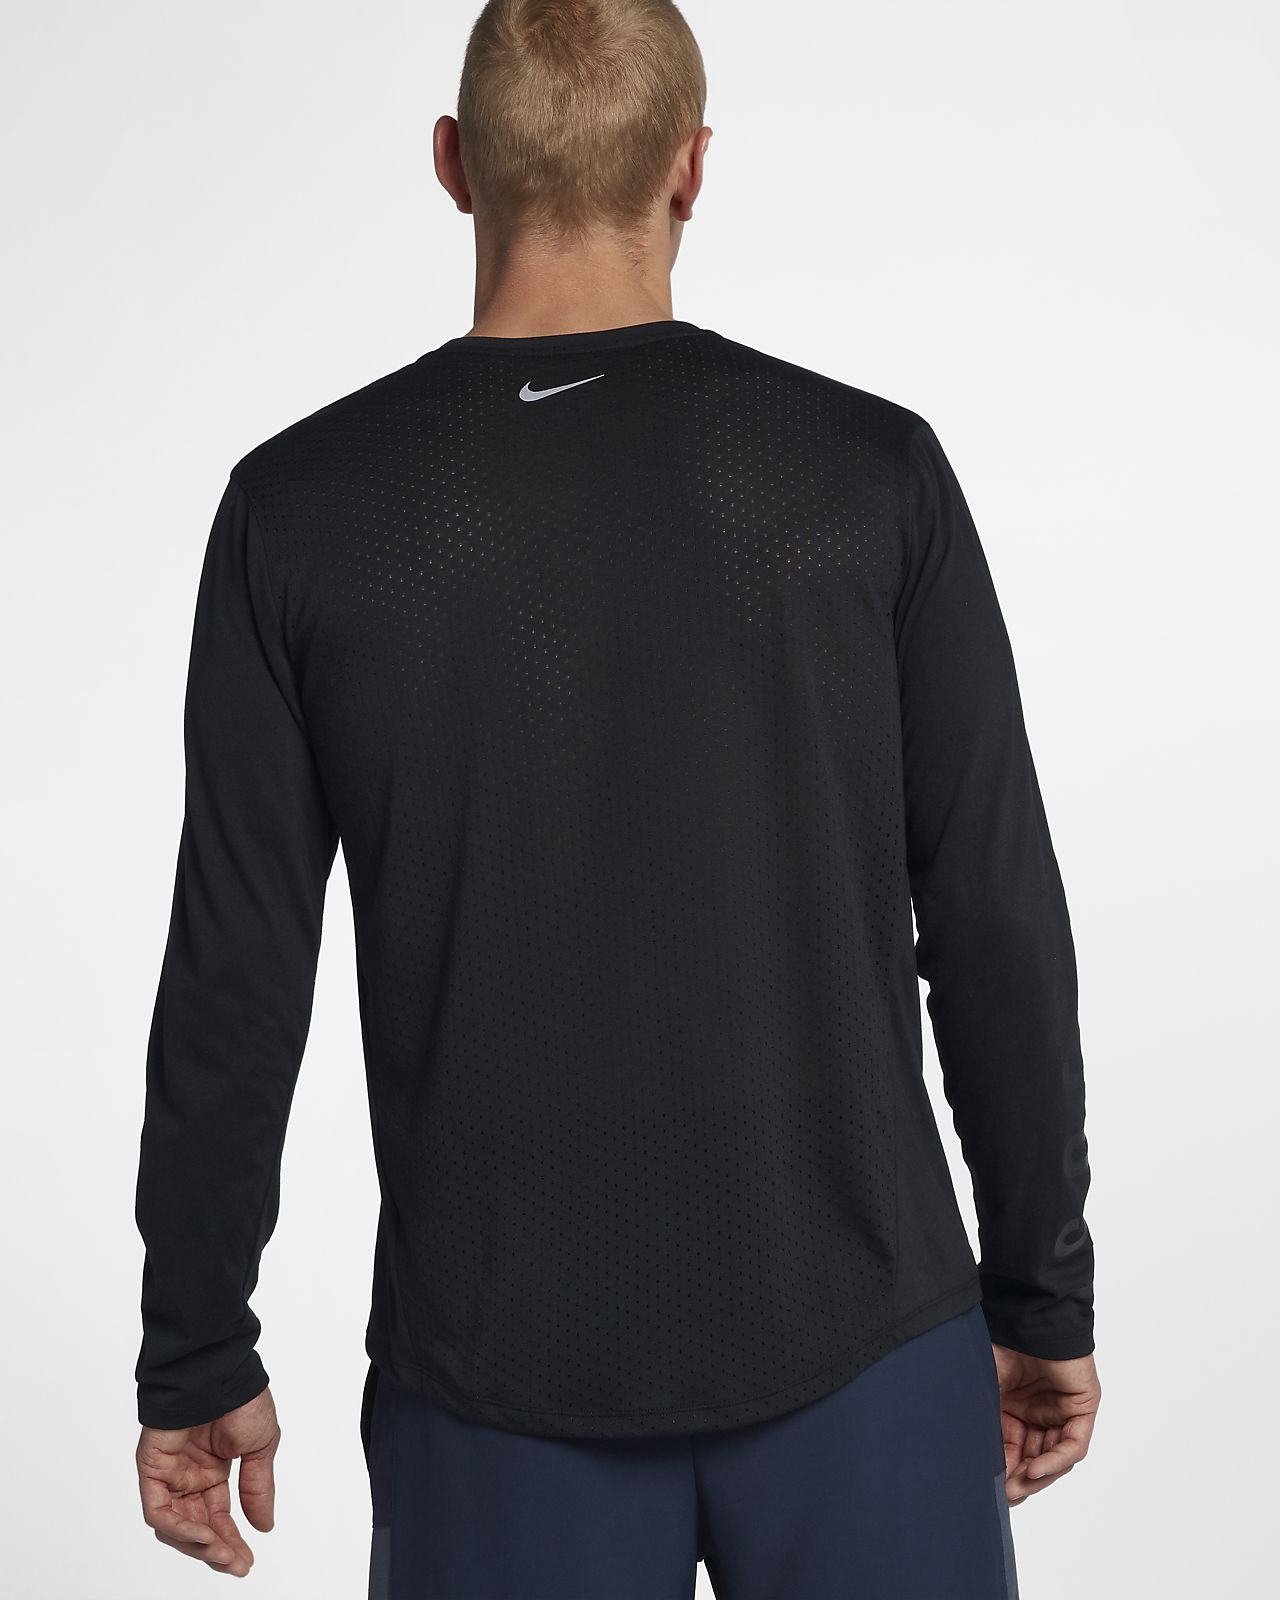 9bc401a27 Nike Tailwind Men's Long-Sleeve Running Top. Nike.com CA